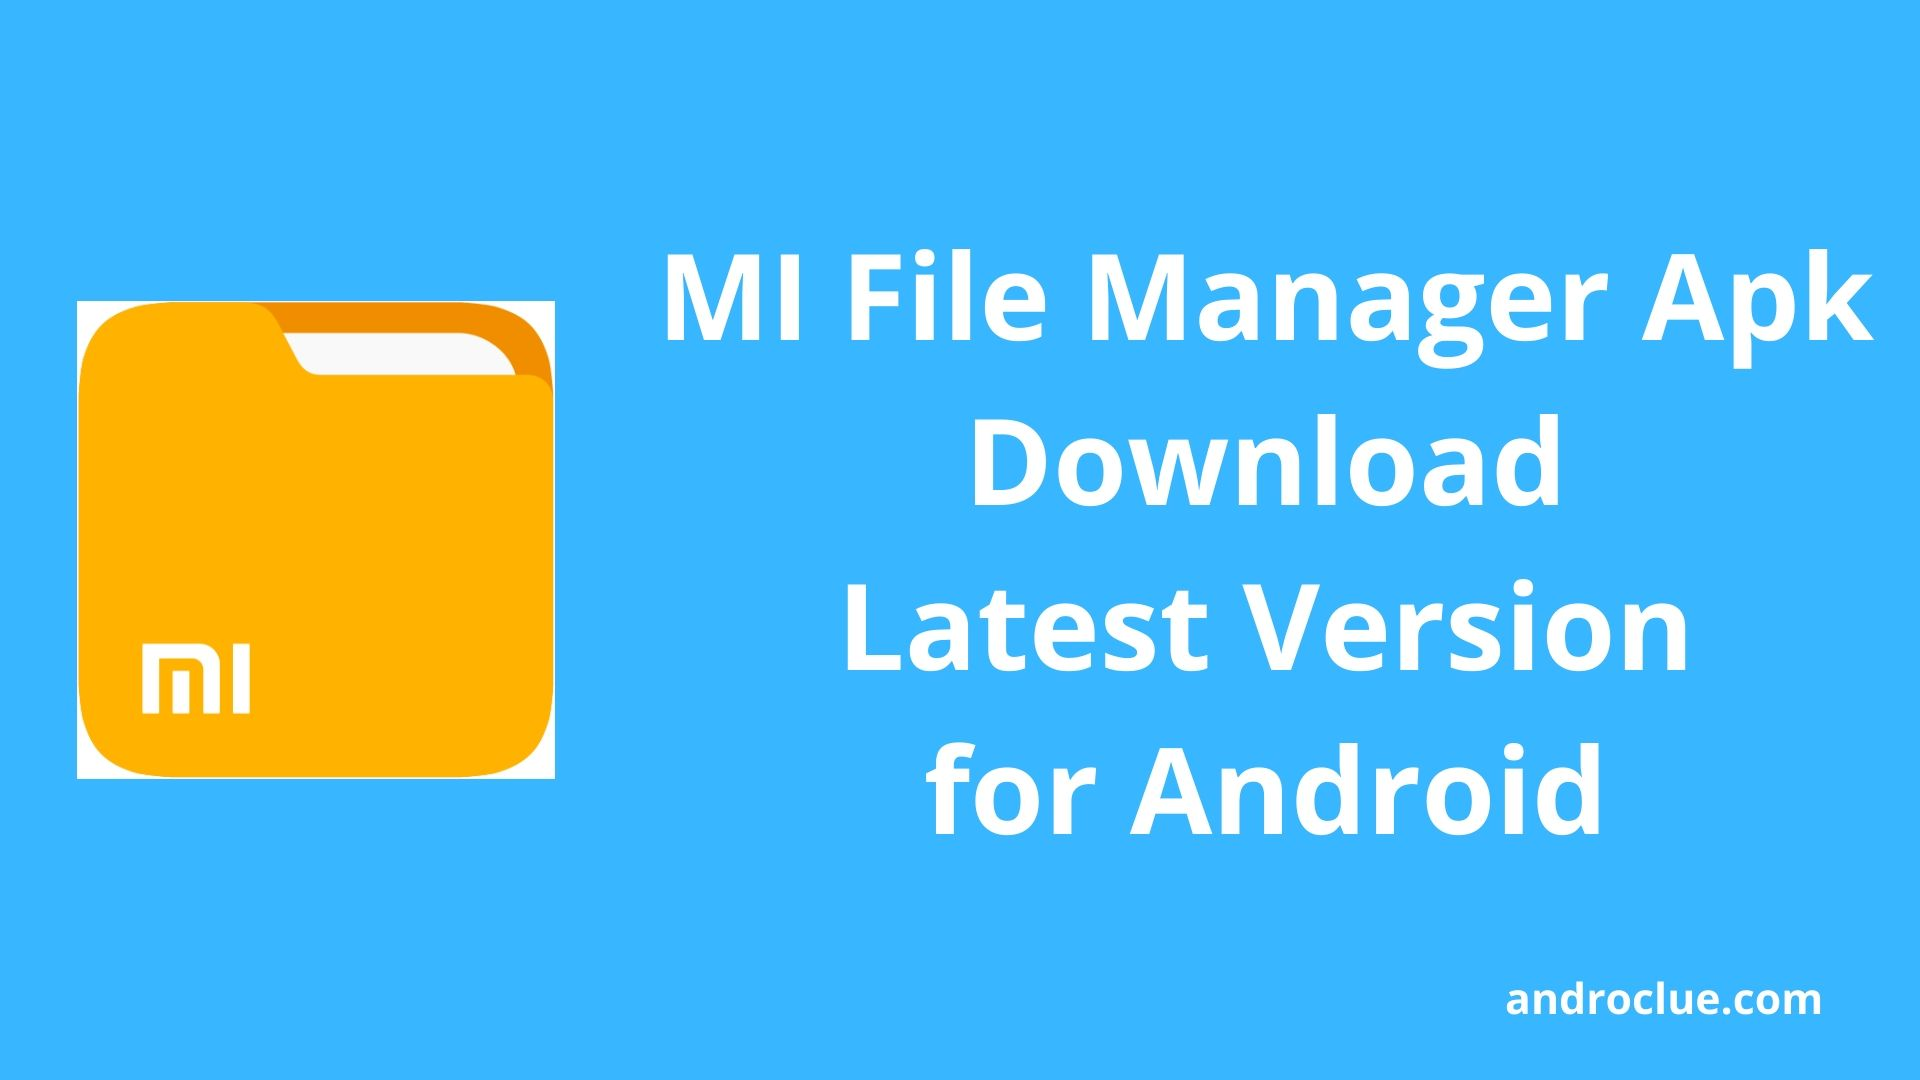 MI File Manager Apk